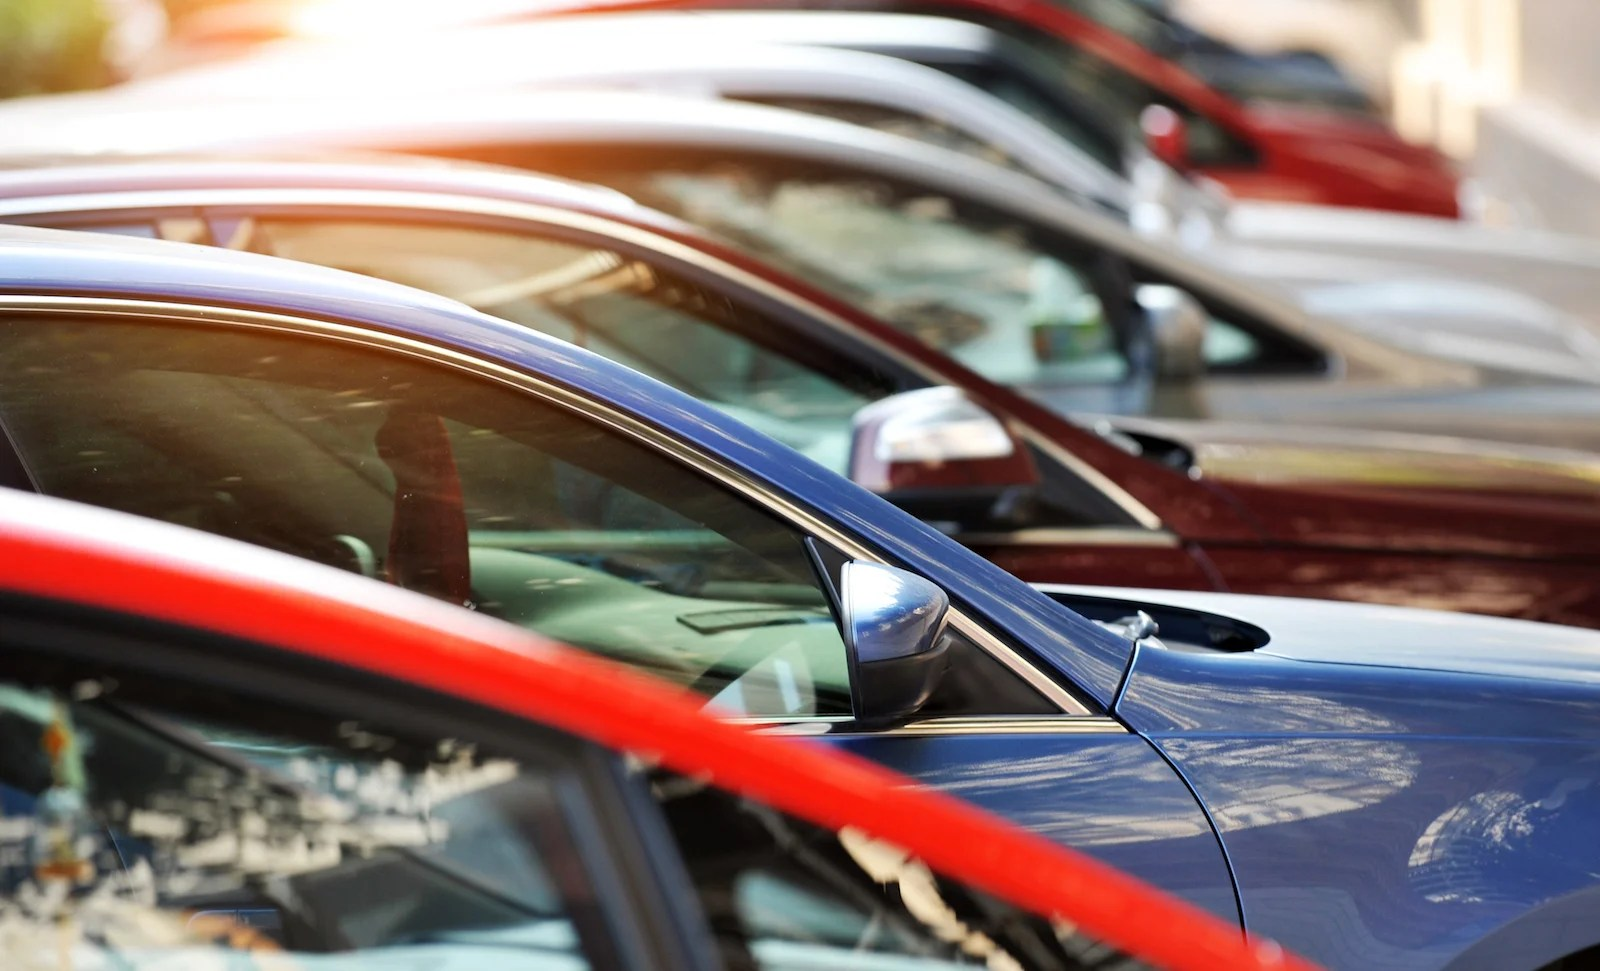 The Best Credit Cards for Purchasing a Car